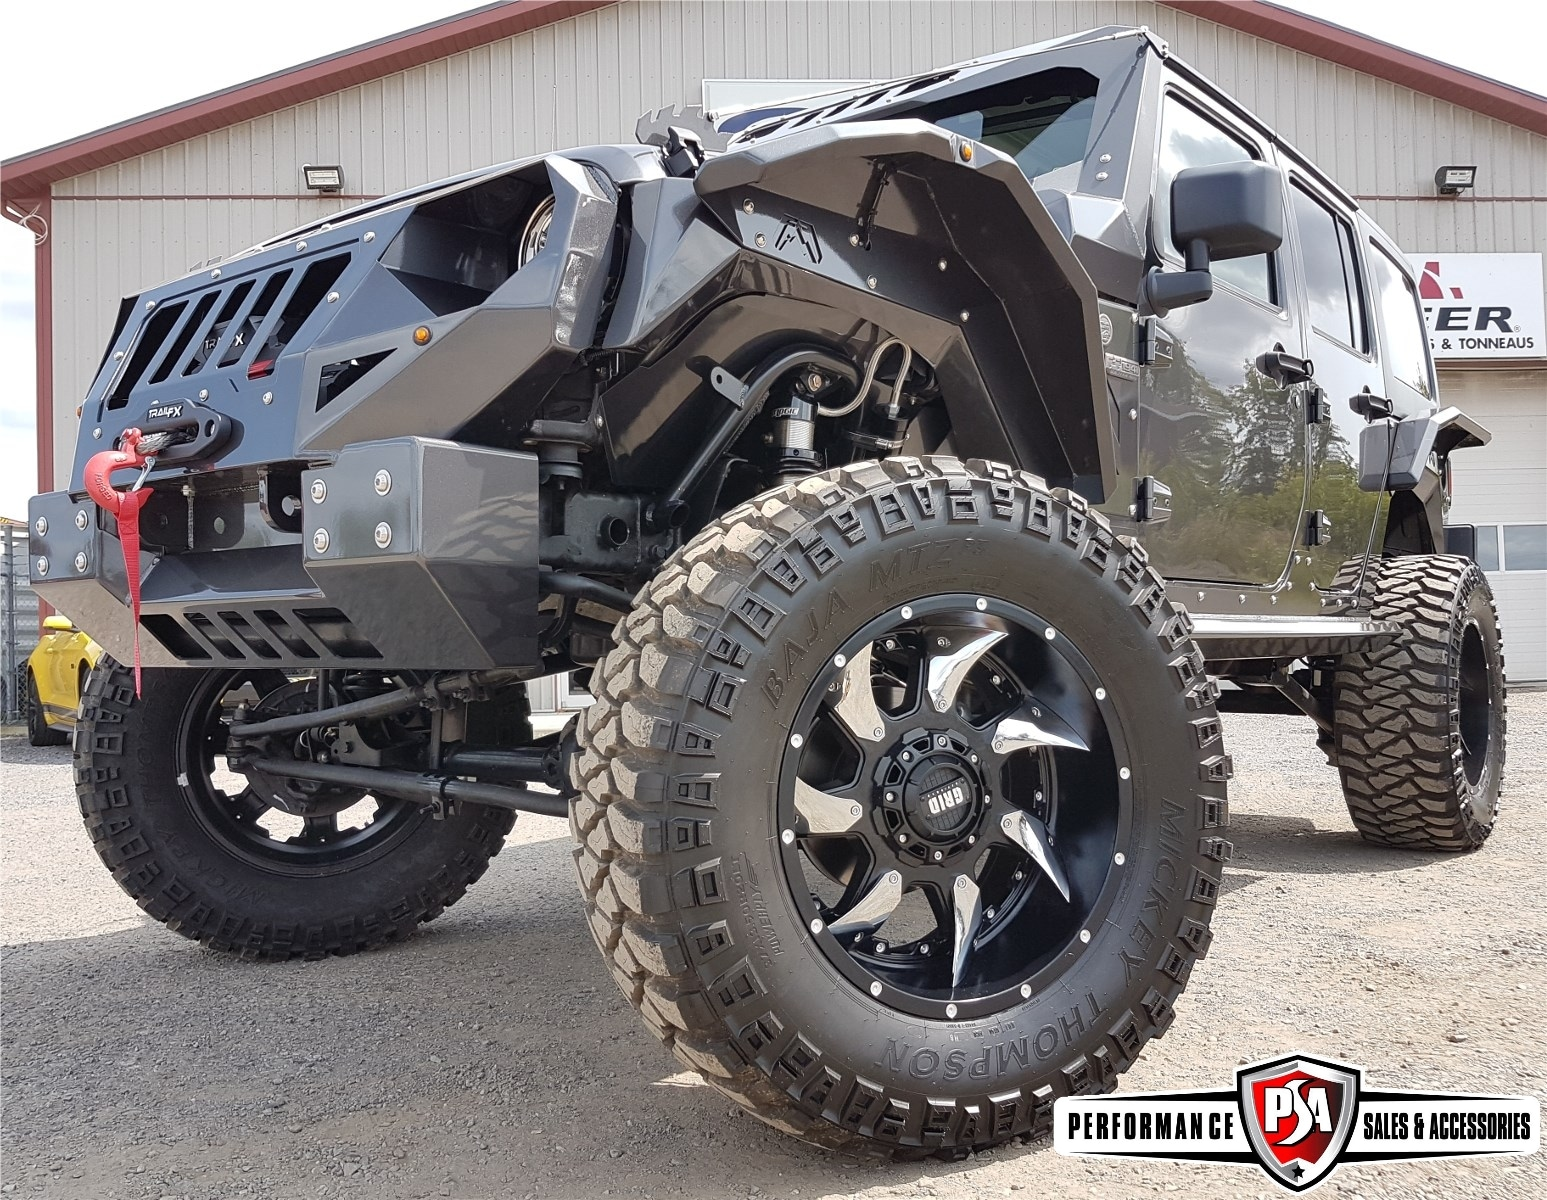 2017 Jeep WRANGLER UNLIMITED EXTREME ($38, 000 IN ACCESSORIES!!) SUV